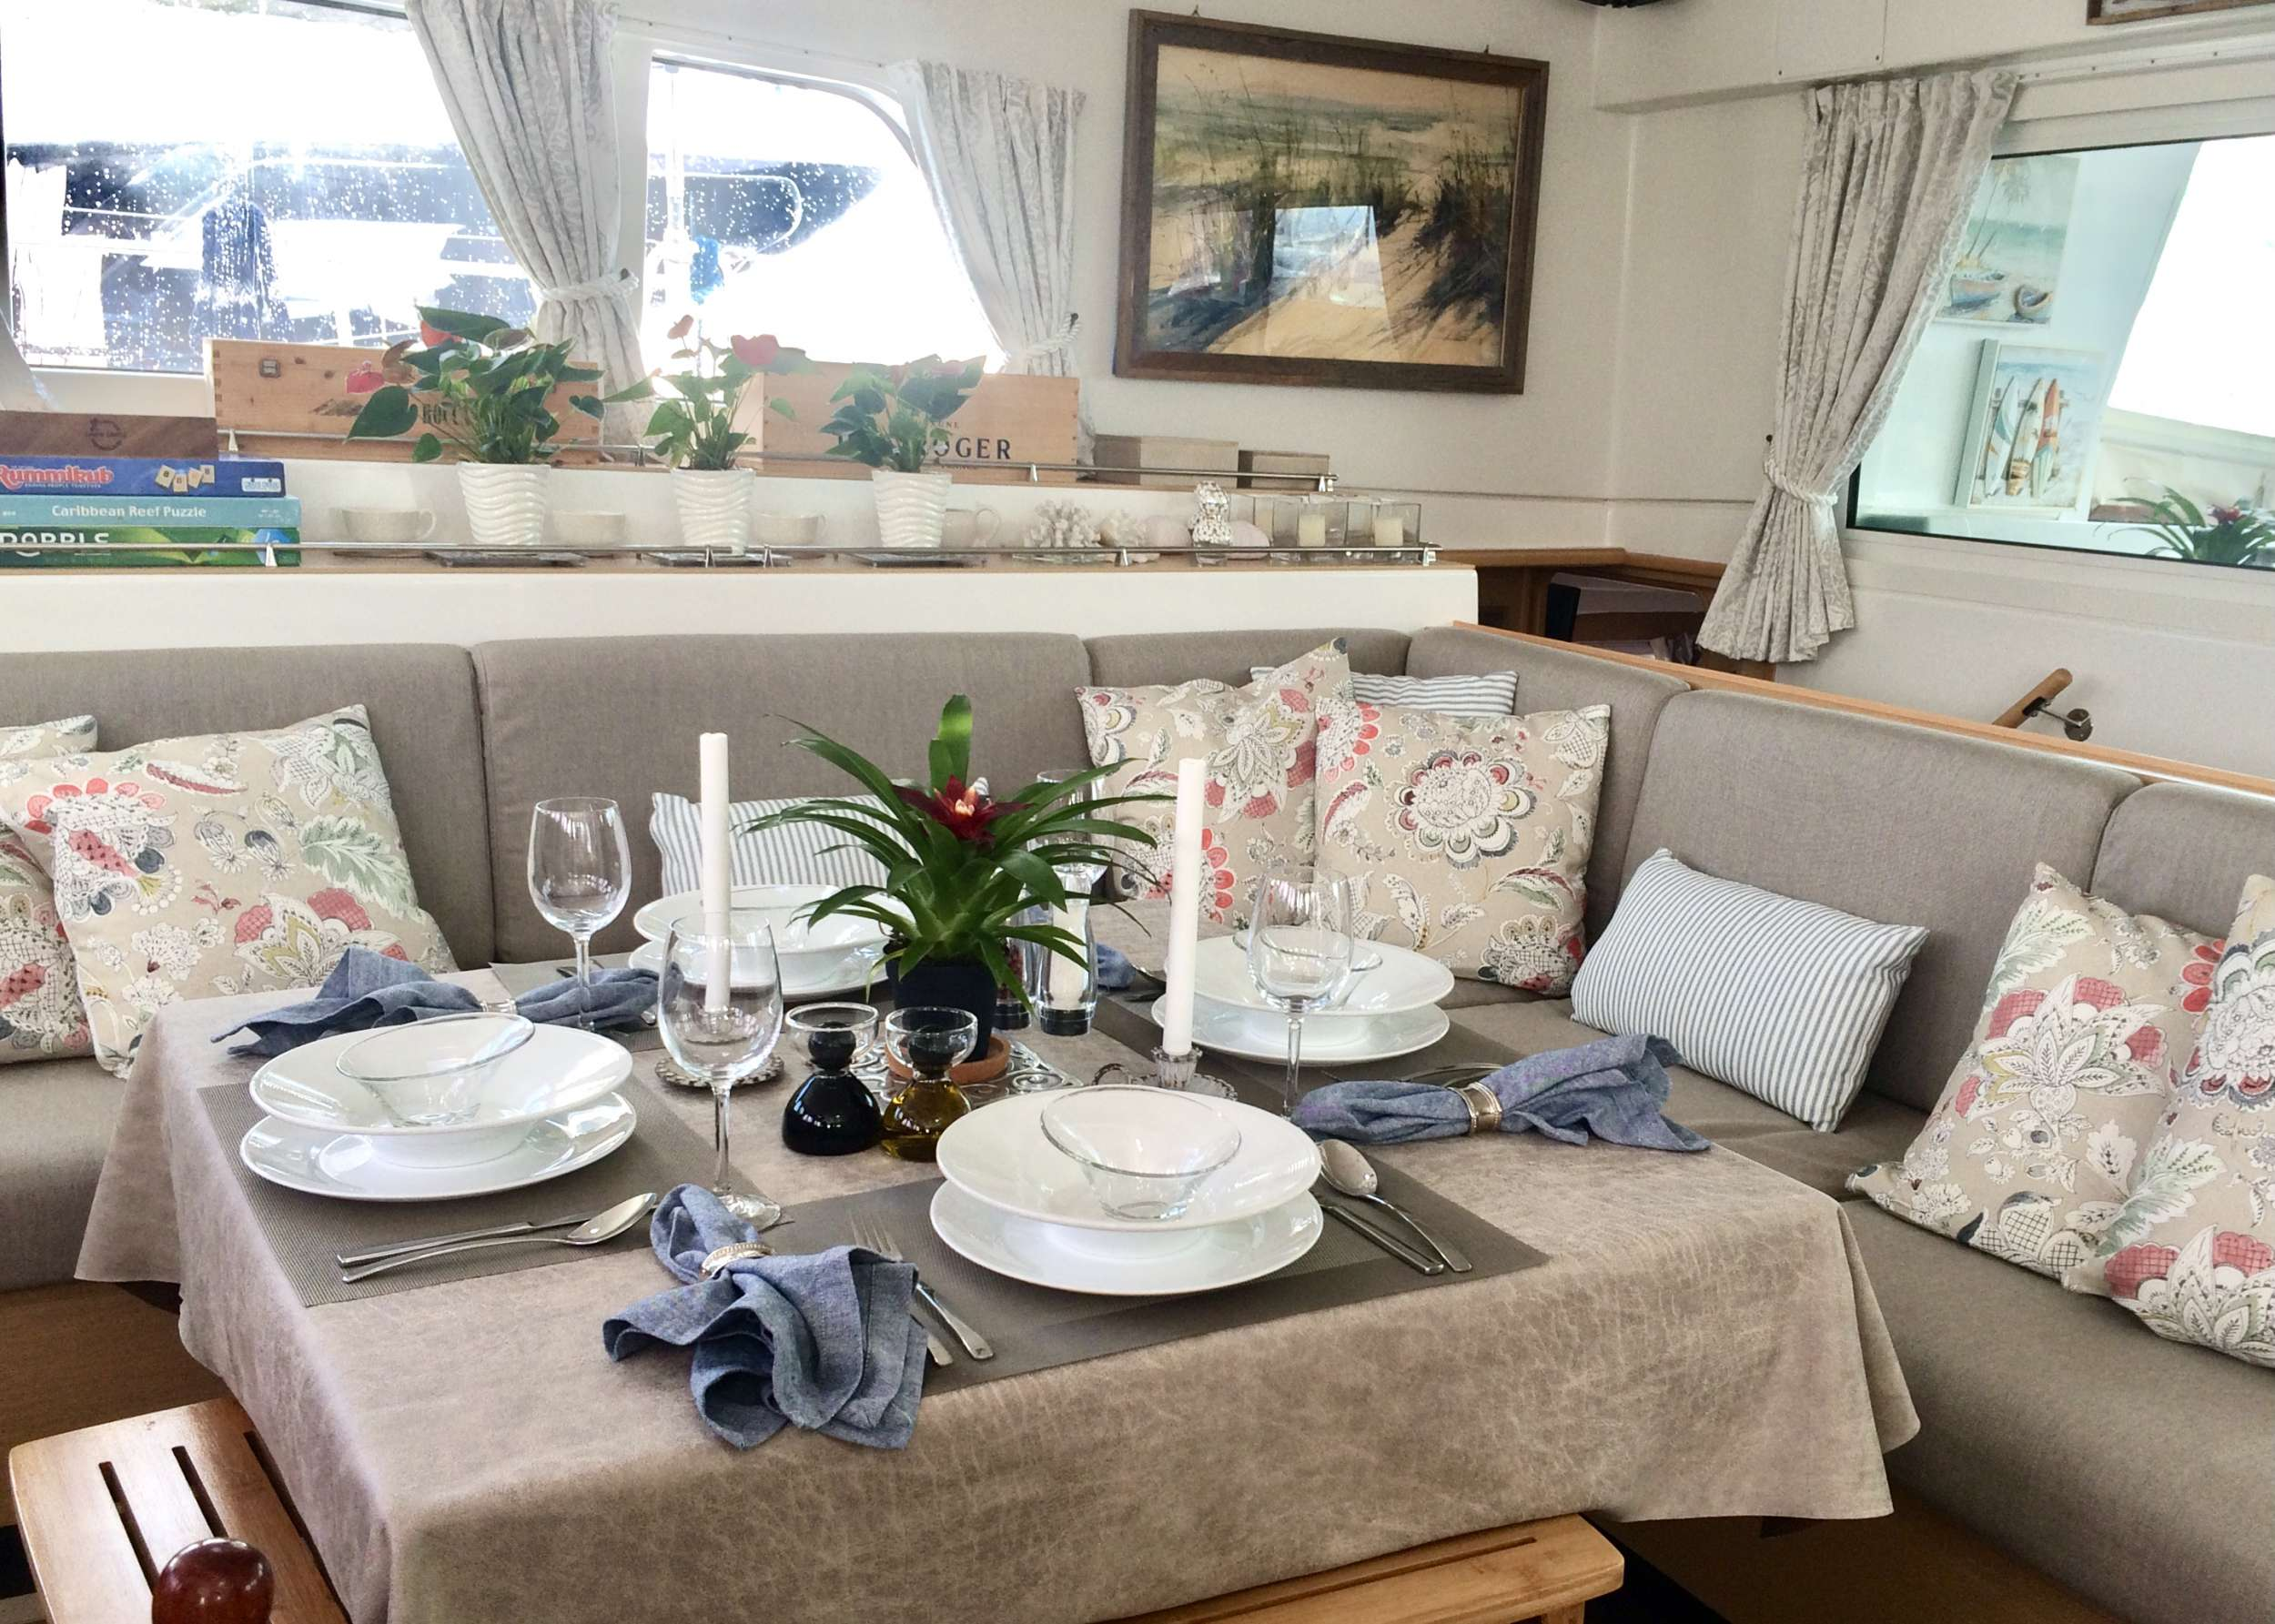 Formal dining inside, or as a casual table for games and activities